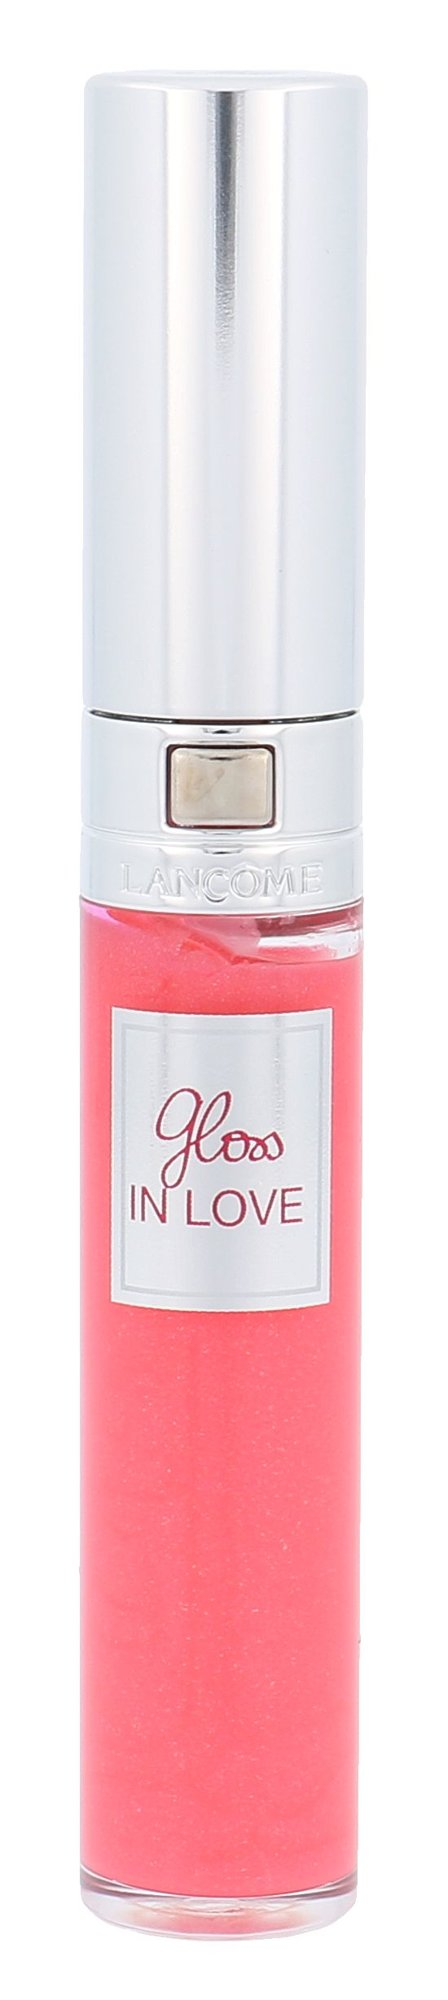 Lancôme Gloss In Love Cosmetic 6ml 341